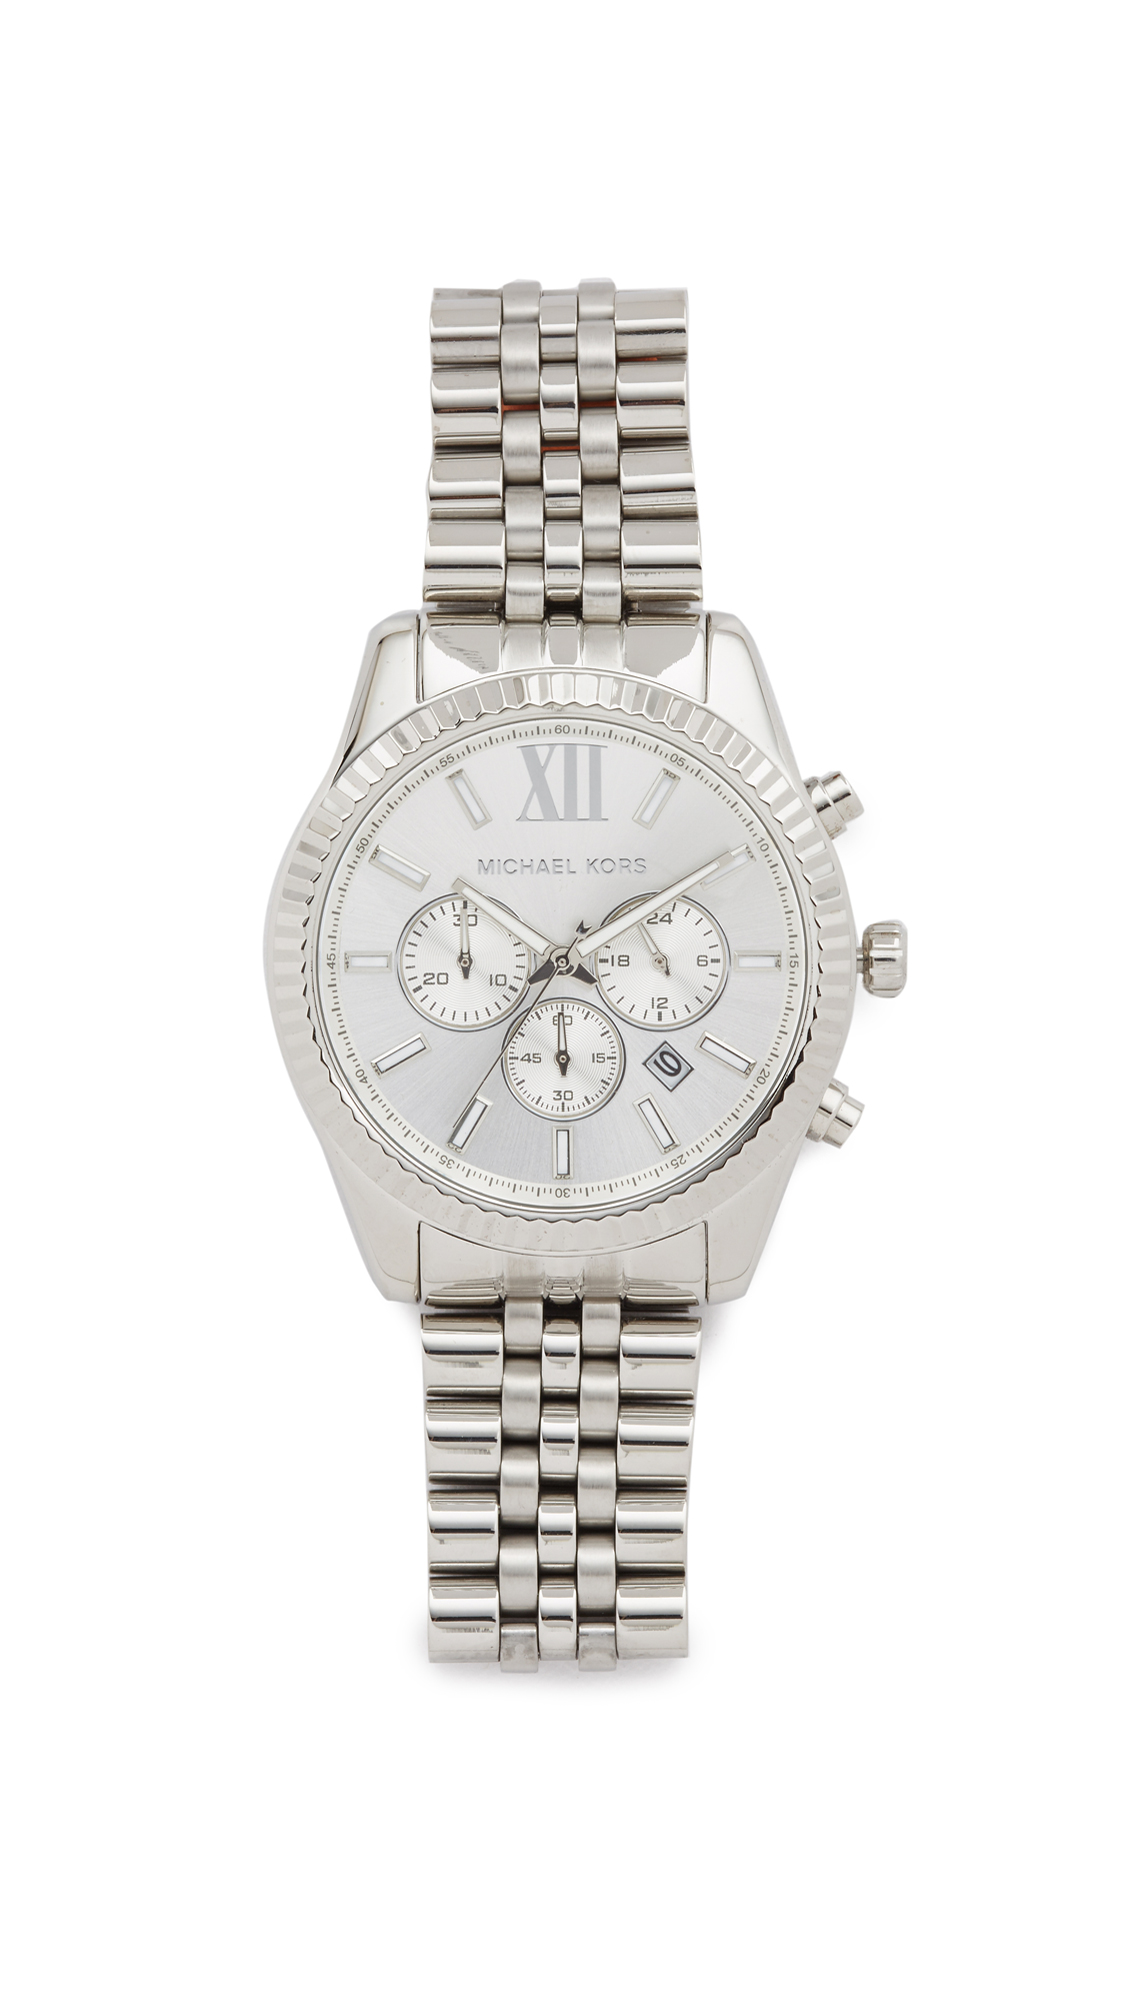 Michael Kors Lexington Chronograph Watch In Stainless Steel